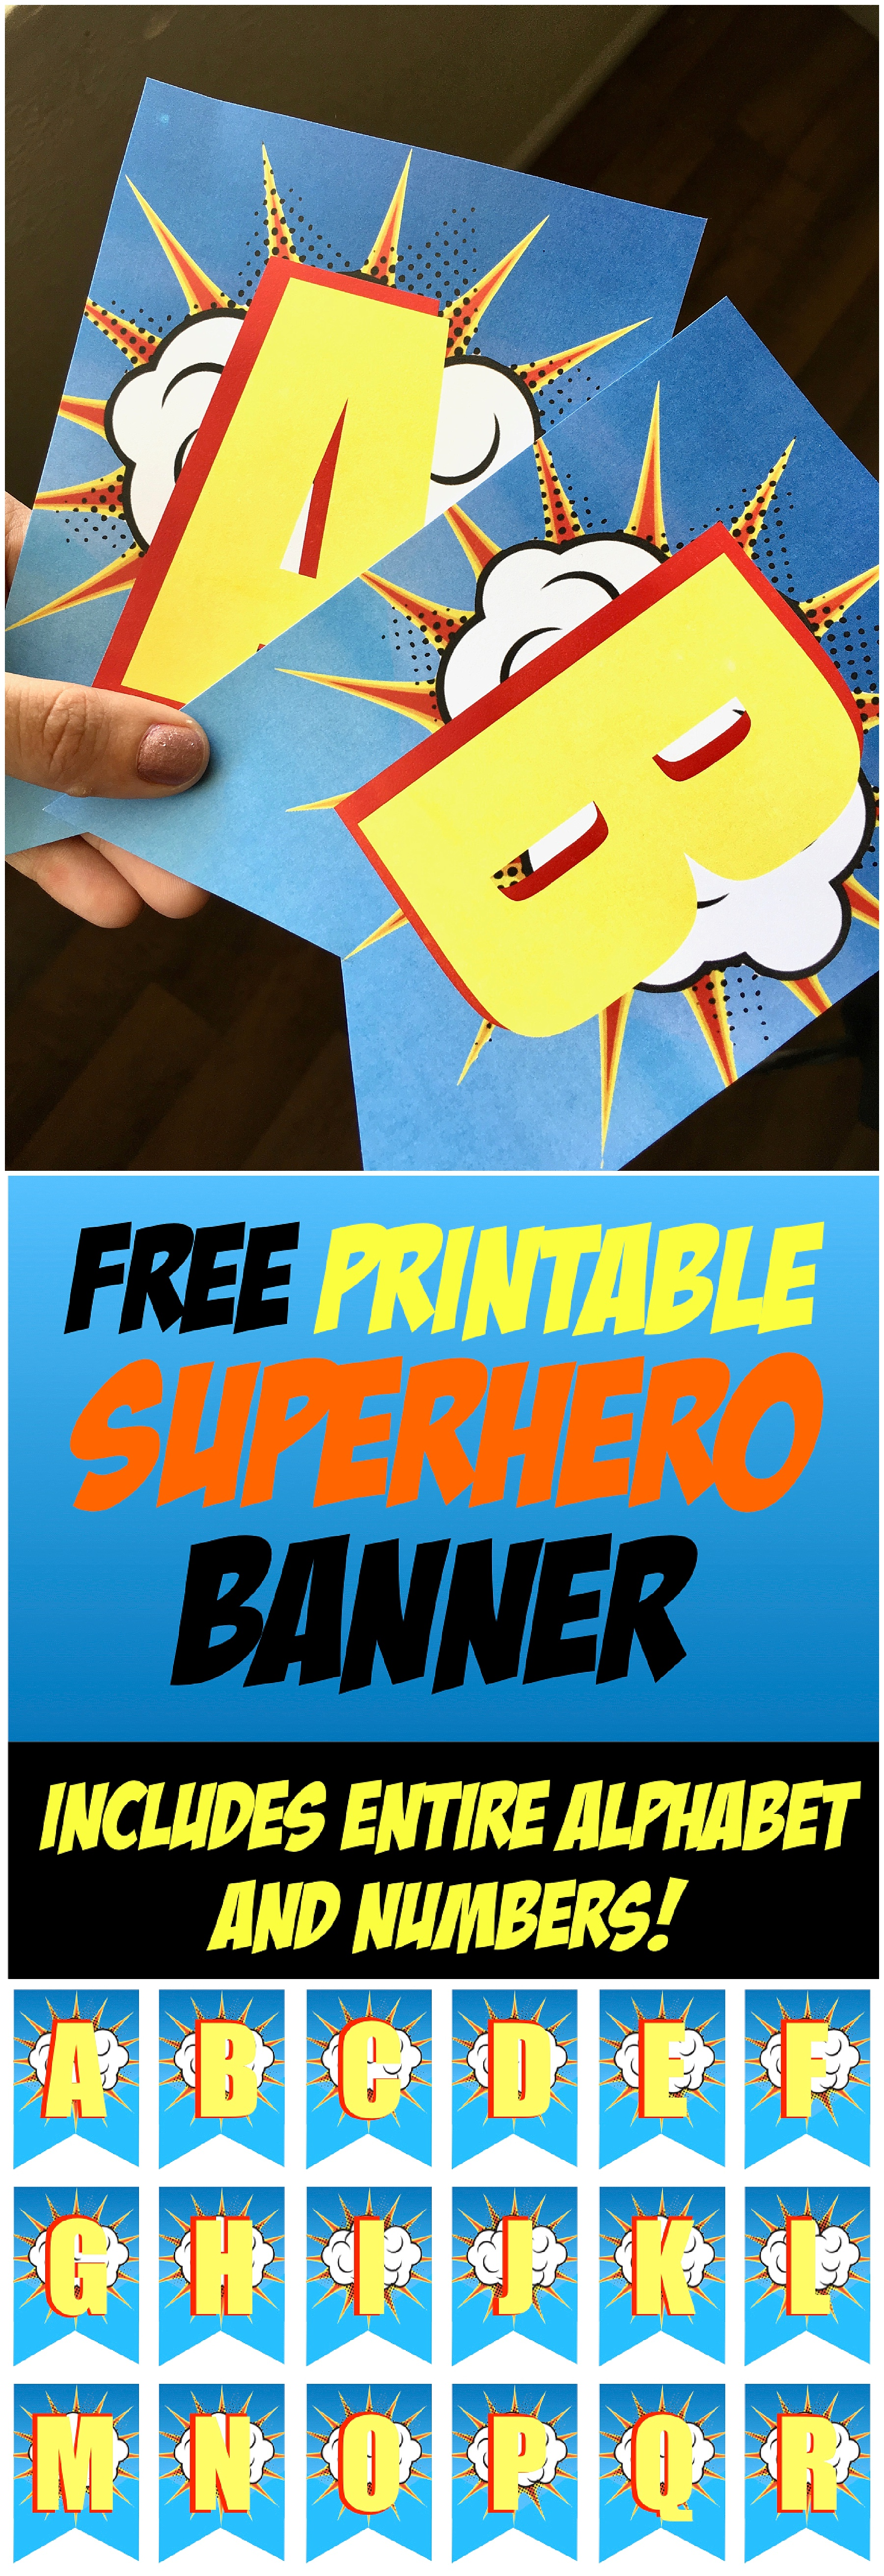 image about Free Superhero Party Printable referred to as Superhero Birthday Bash No cost Printable Banner - Incorporates